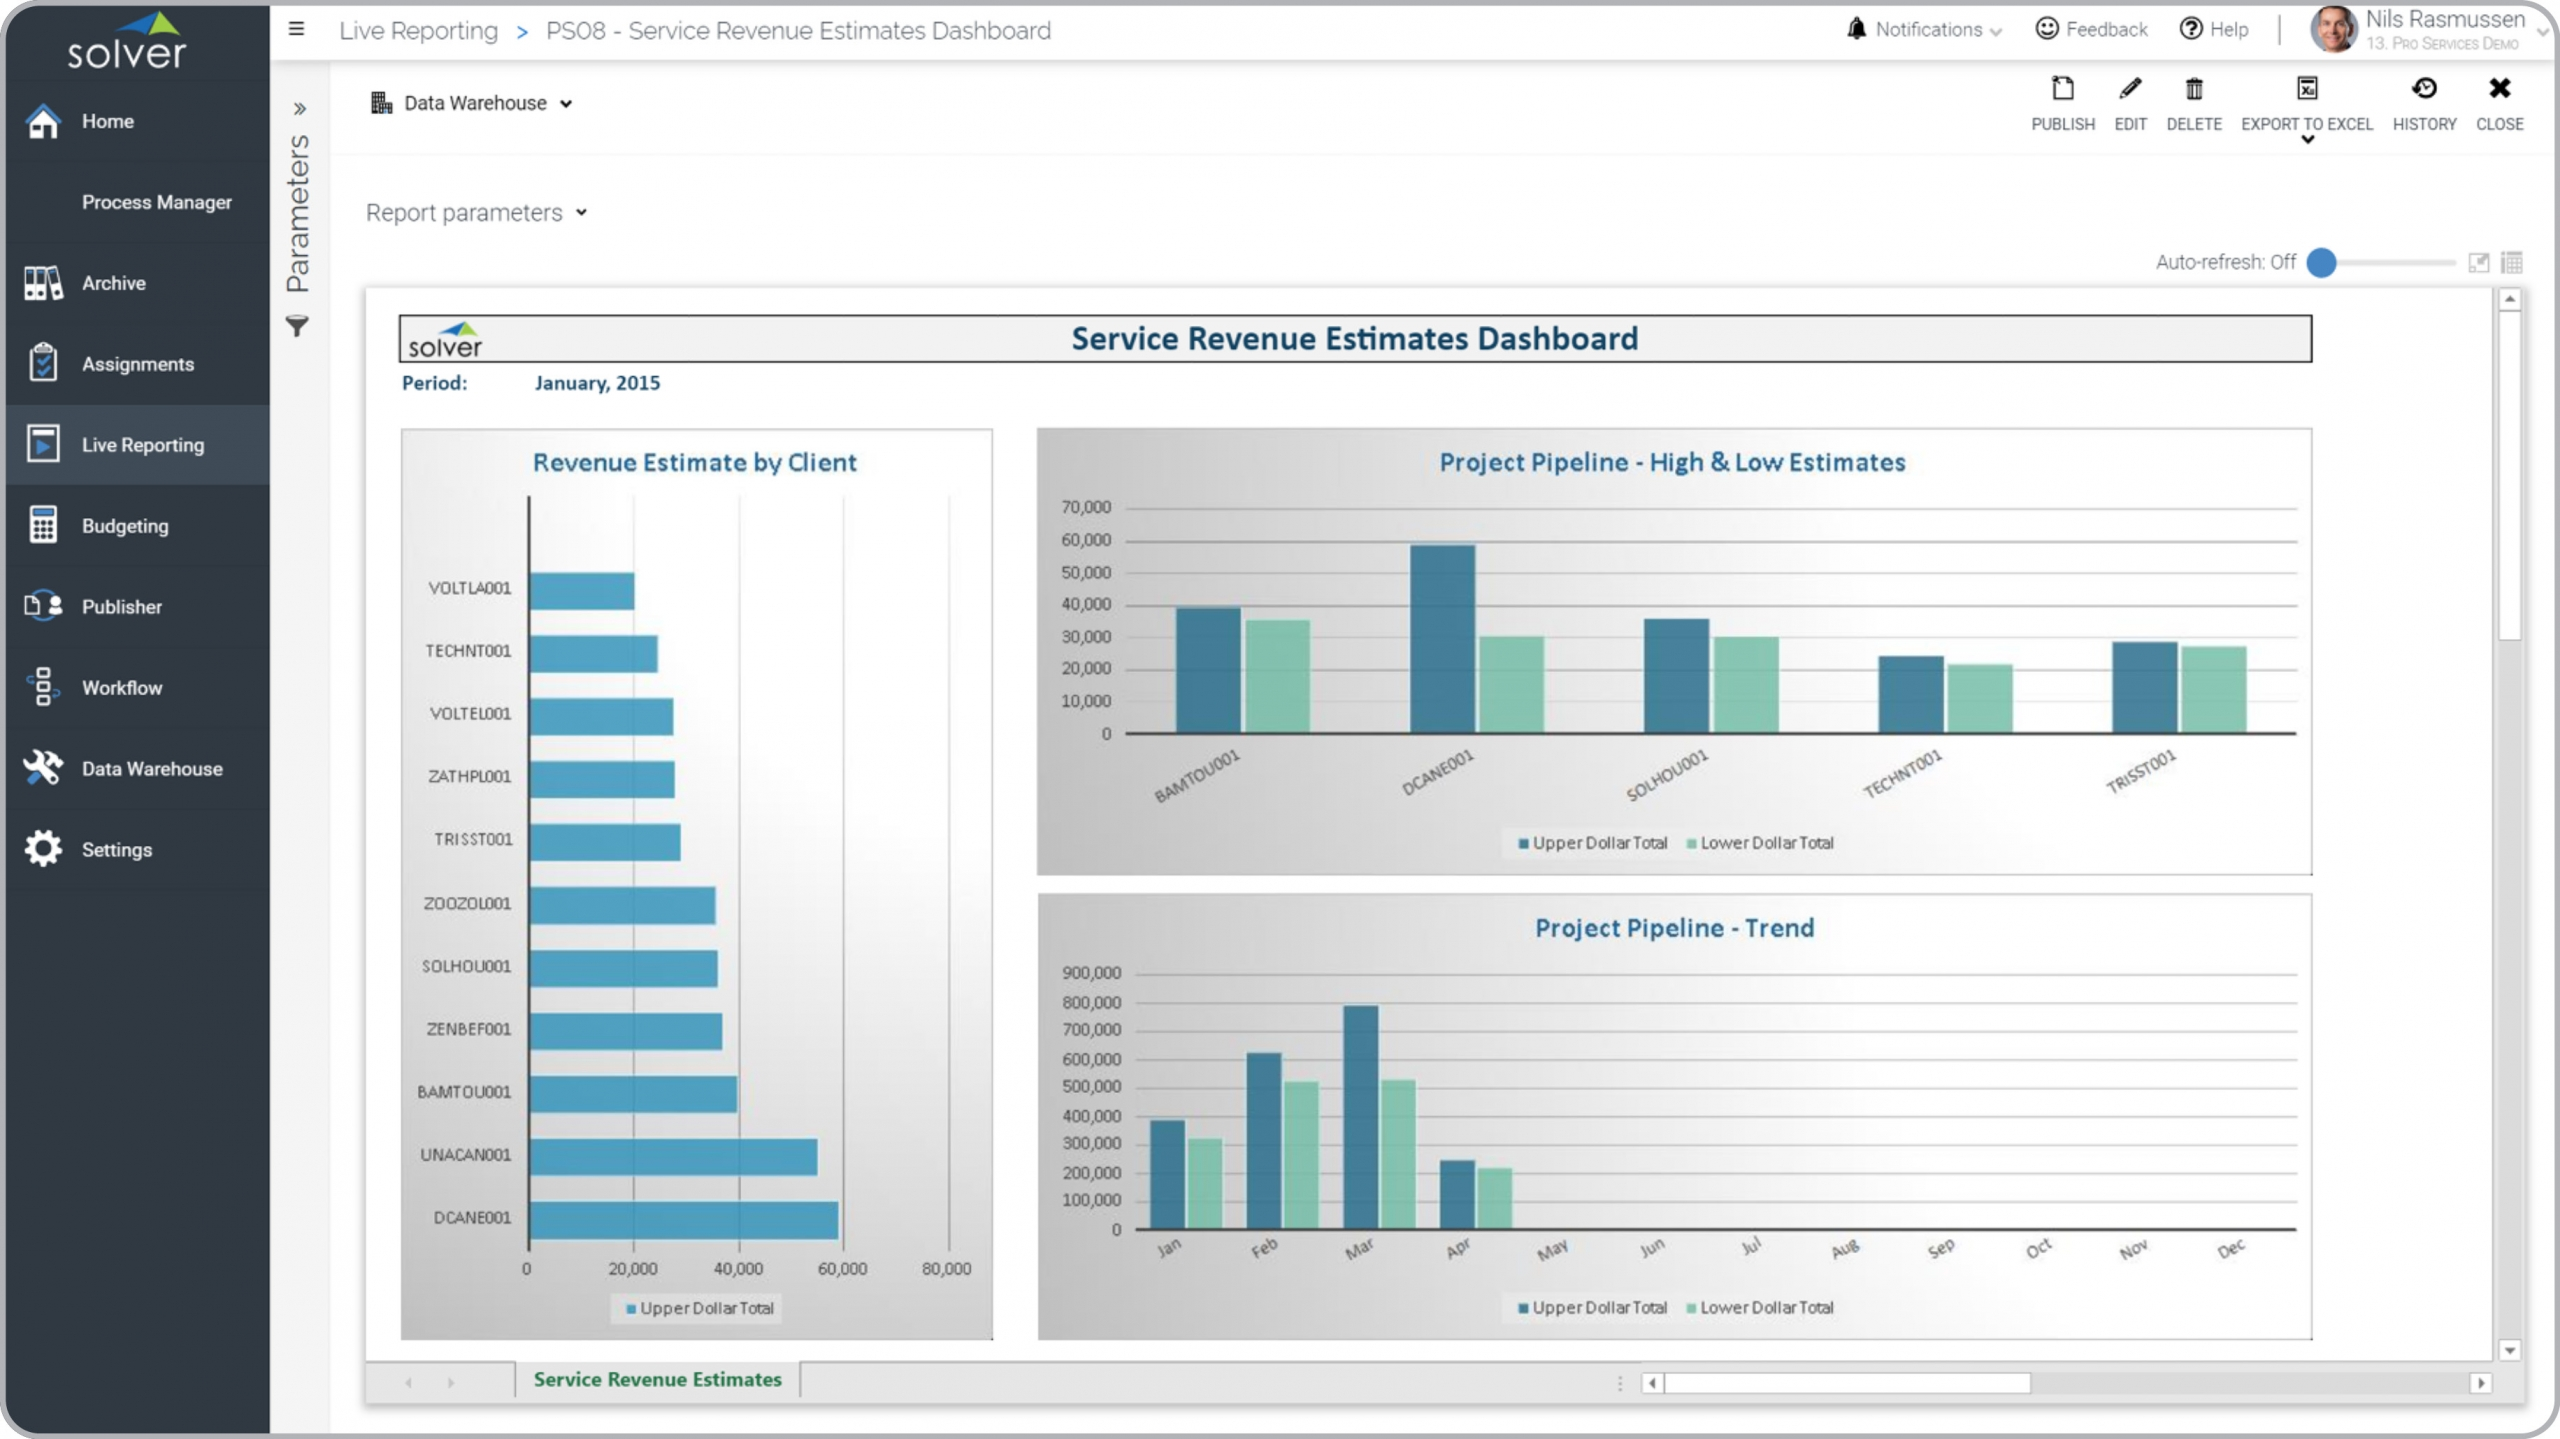 Professional Services – Revenue Estimate Dashboard